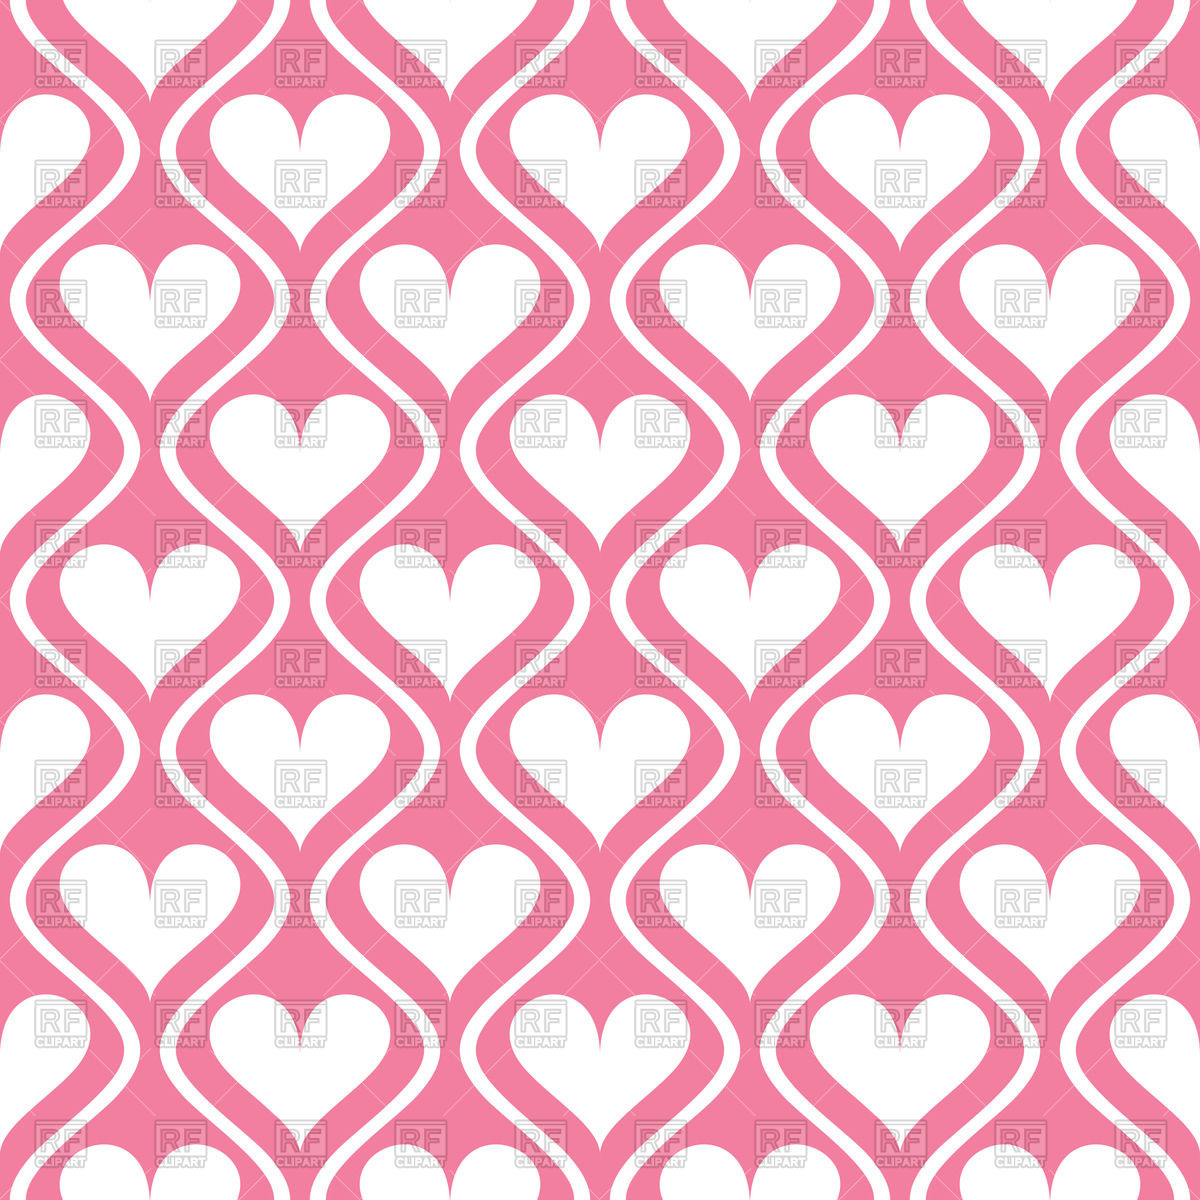 download pink and white heart wallpaper gallery. Black Bedroom Furniture Sets. Home Design Ideas